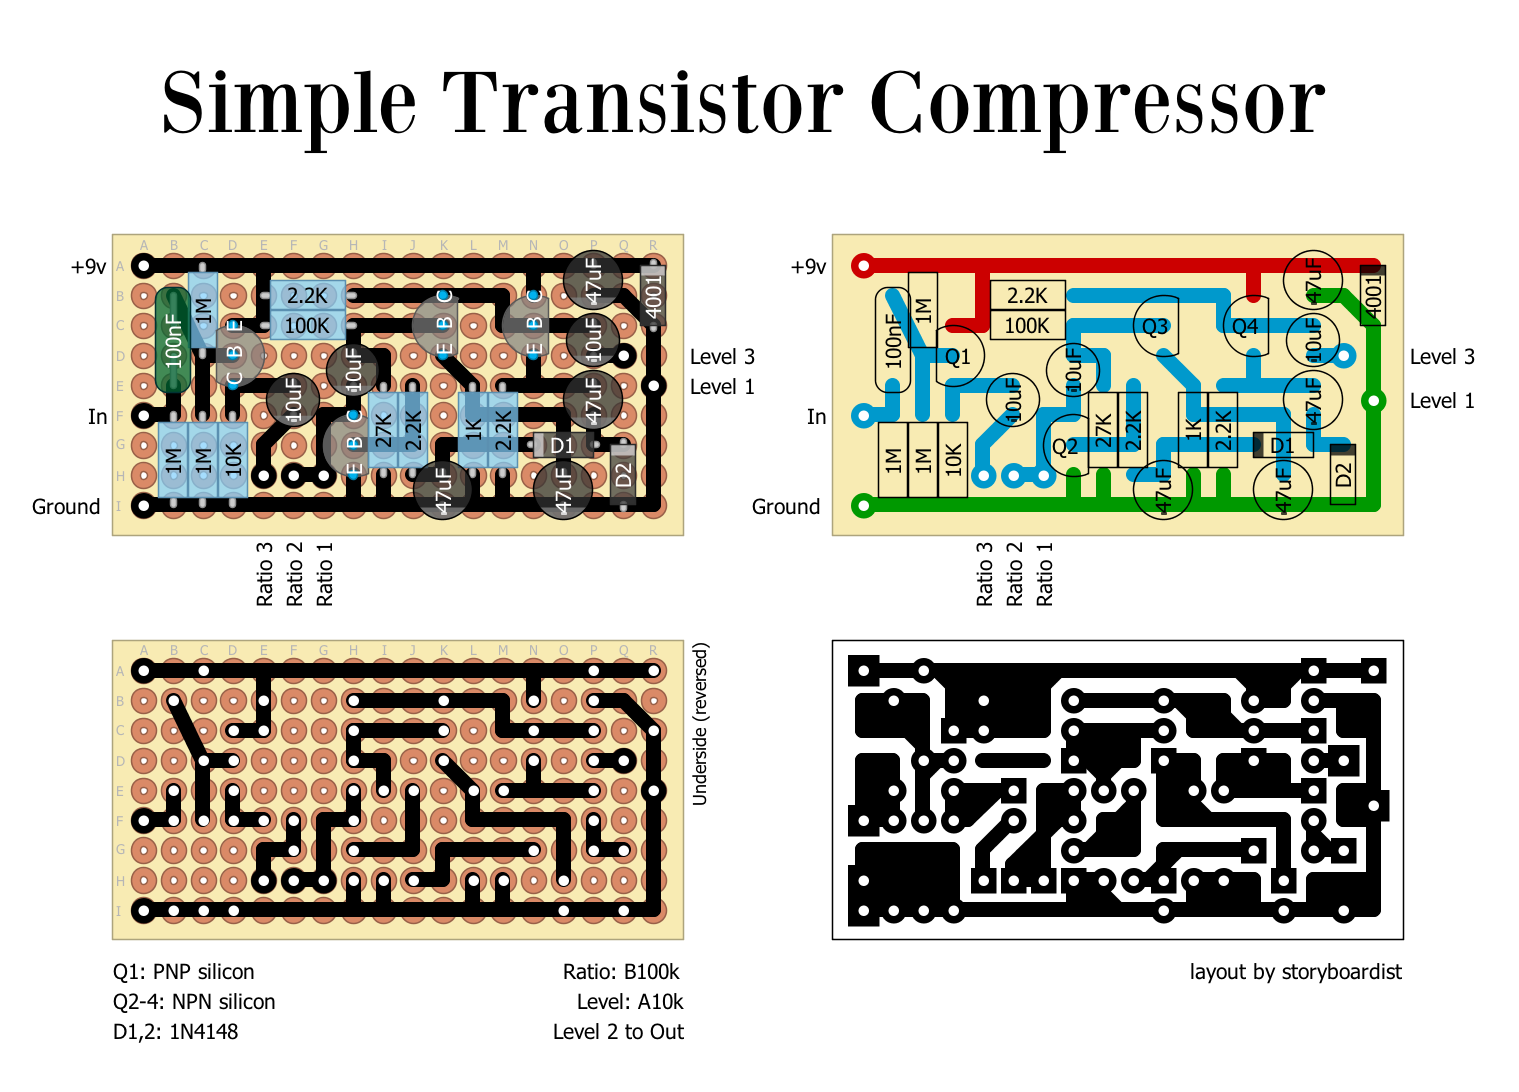 perf and pcb effects layouts simple transistor compressor. Black Bedroom Furniture Sets. Home Design Ideas